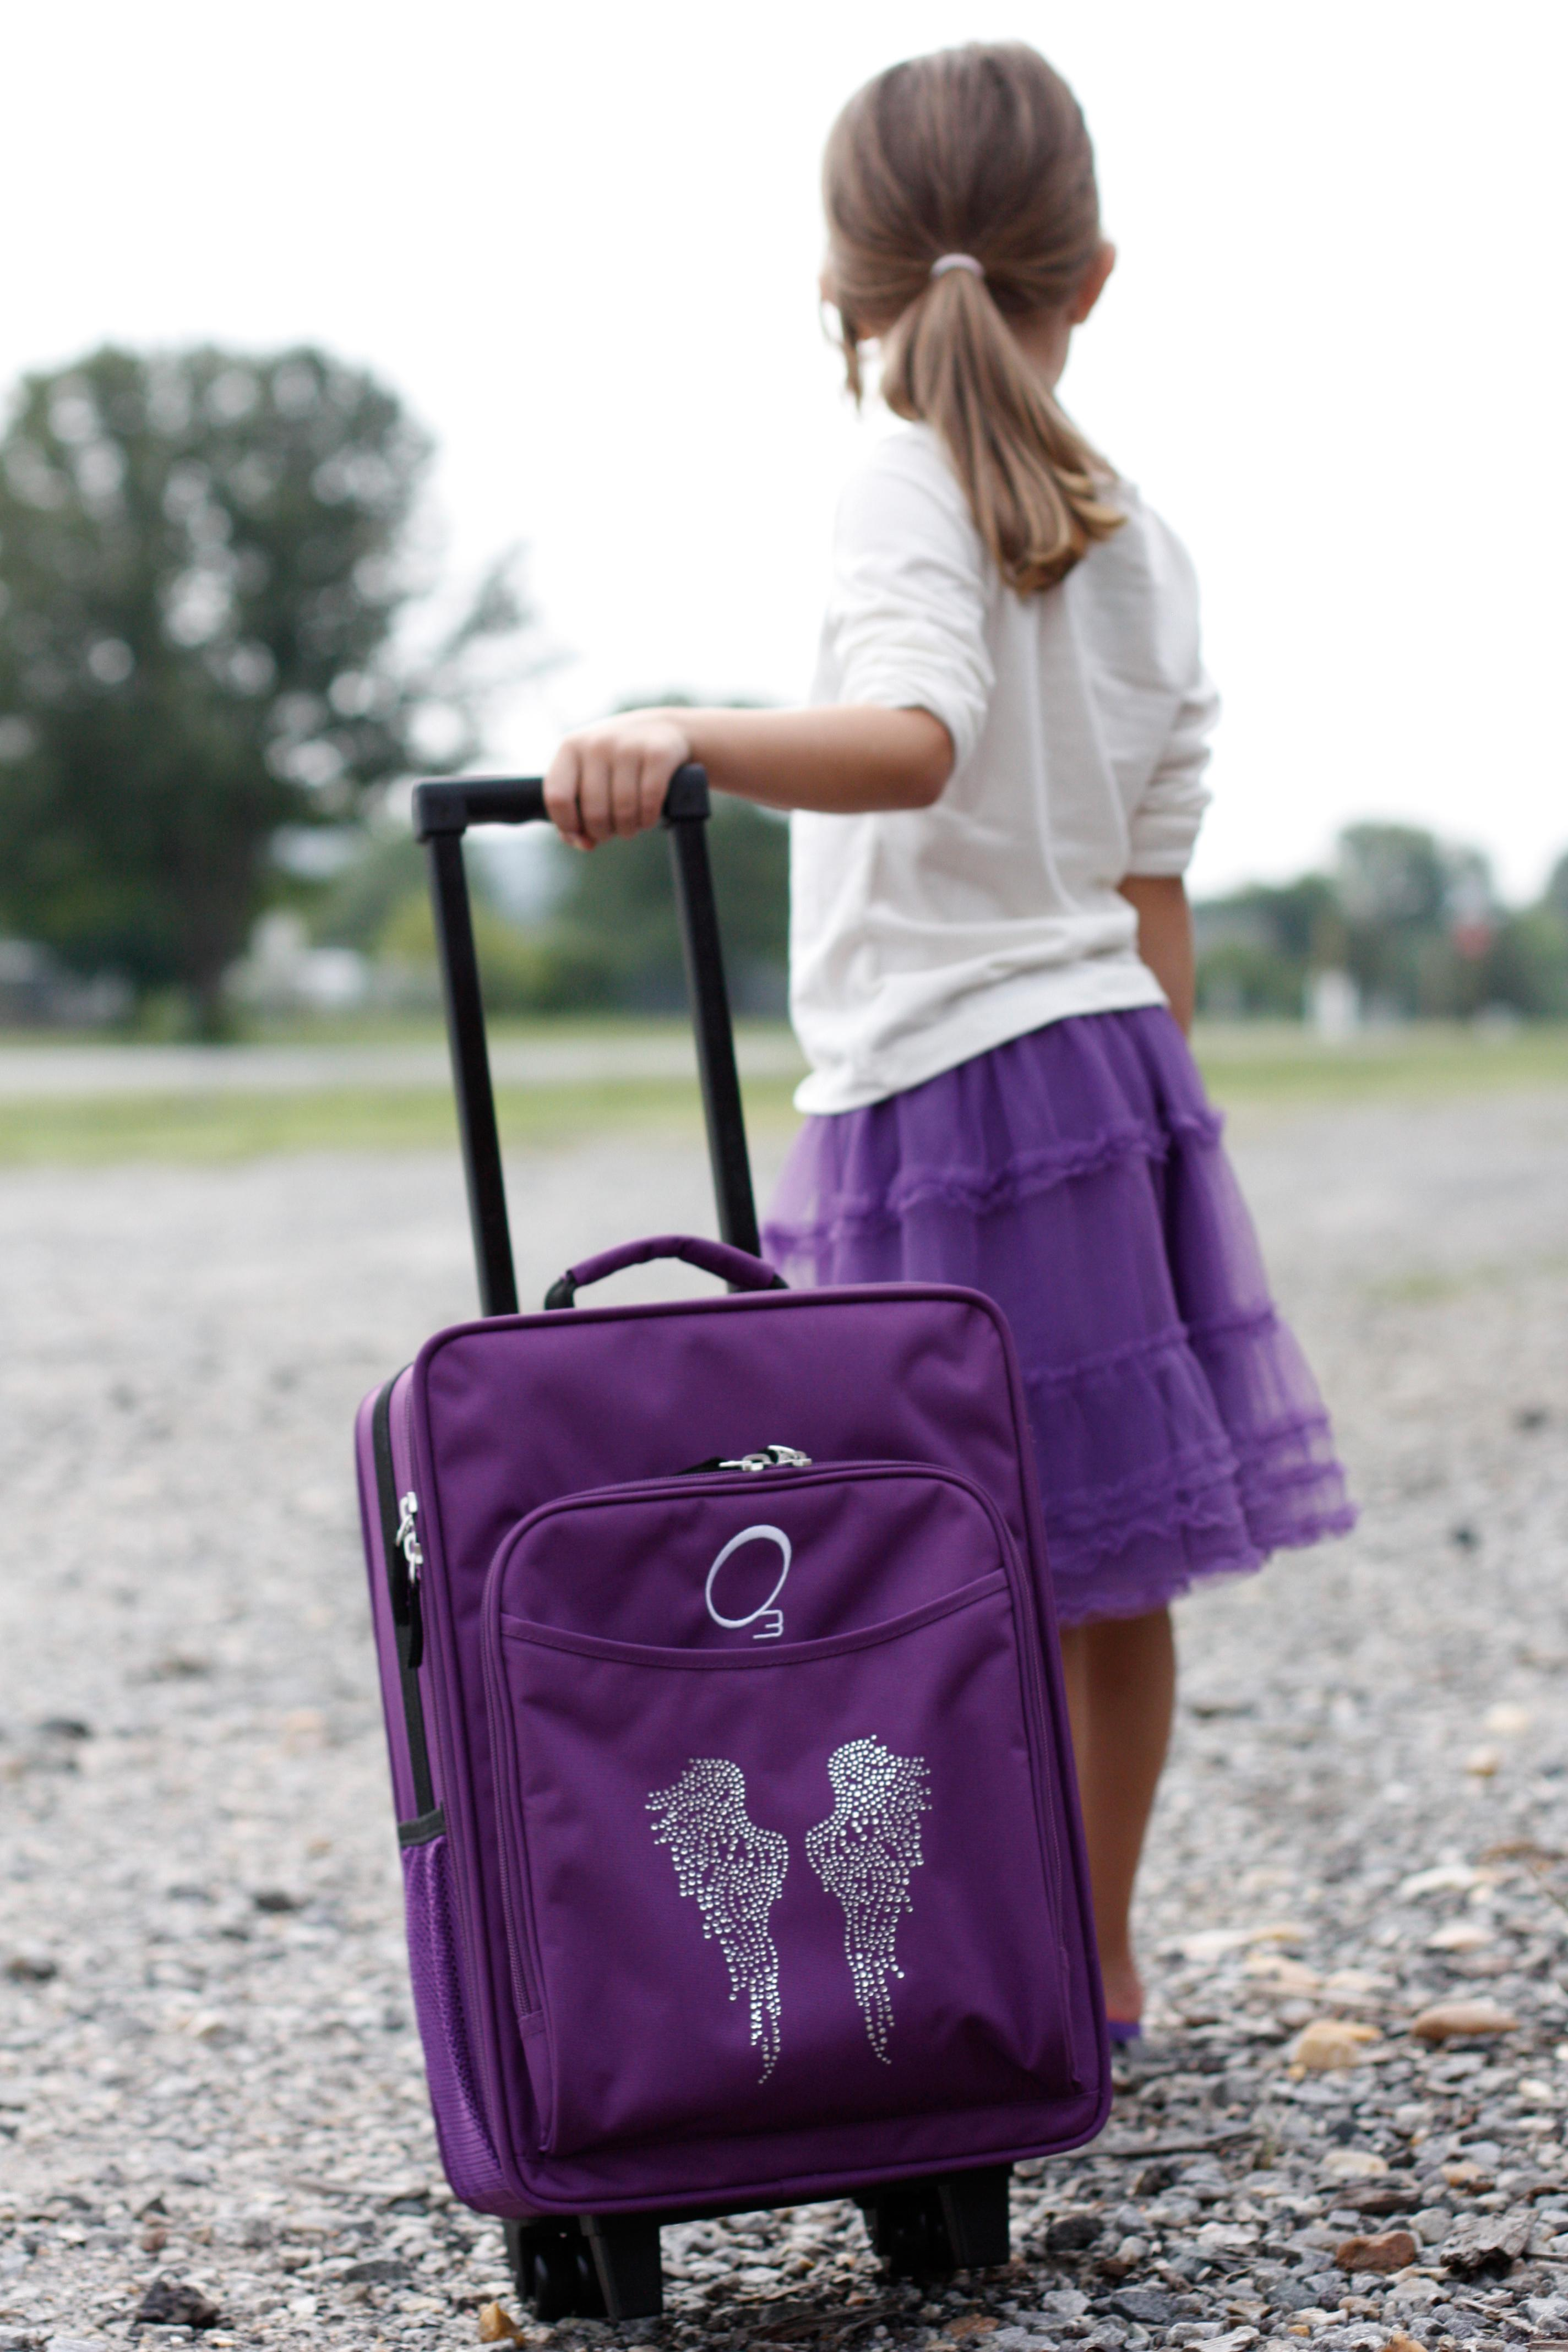 Amazon.com: Obersee Kids Rolling Luggage with Integrated Snack ...